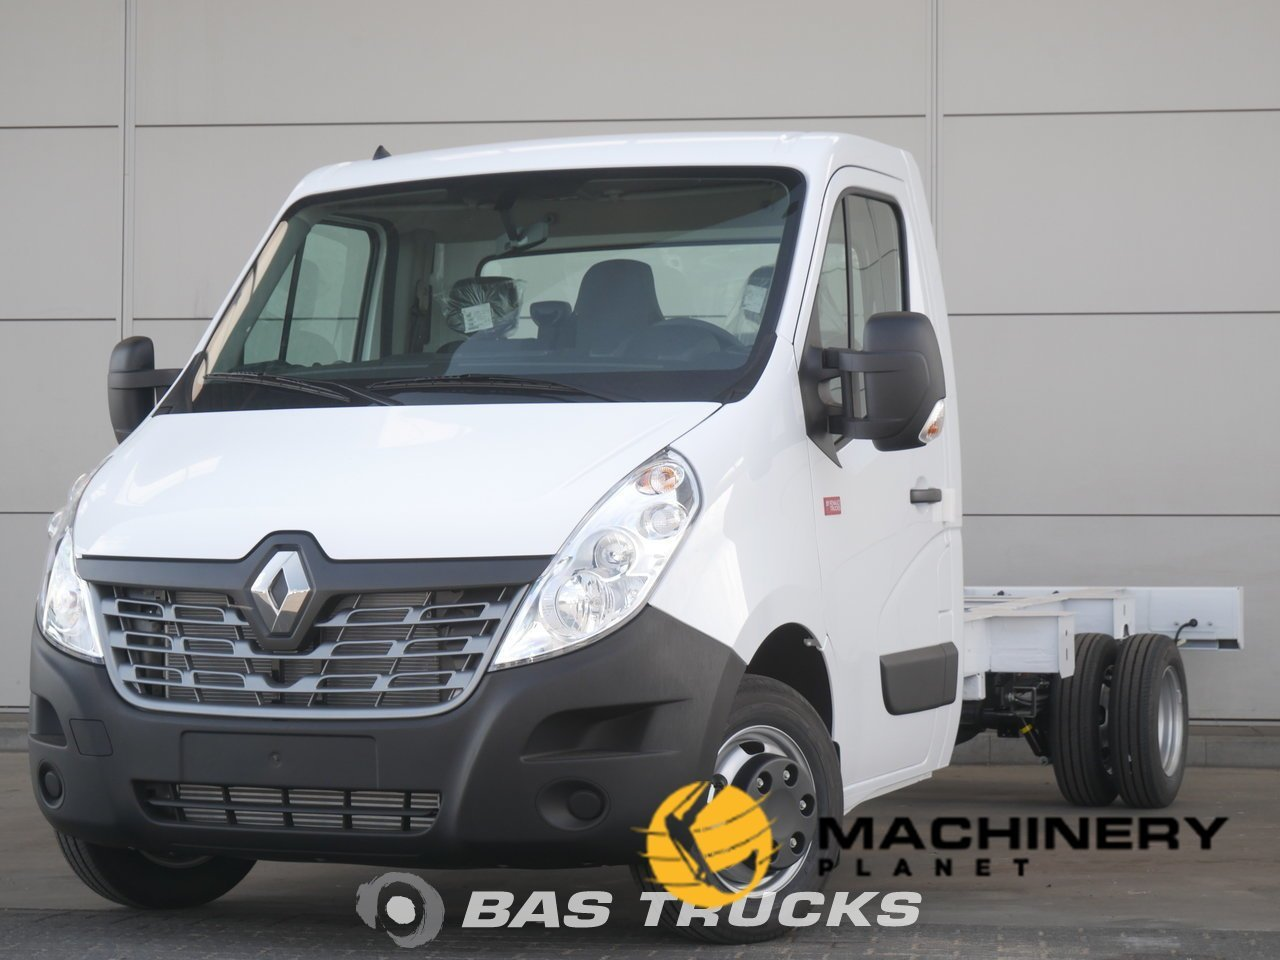 New-Light-commercial-vehicle-Renault-Master_144979_1-1554202674756_5ca34032b8804-1.jpg